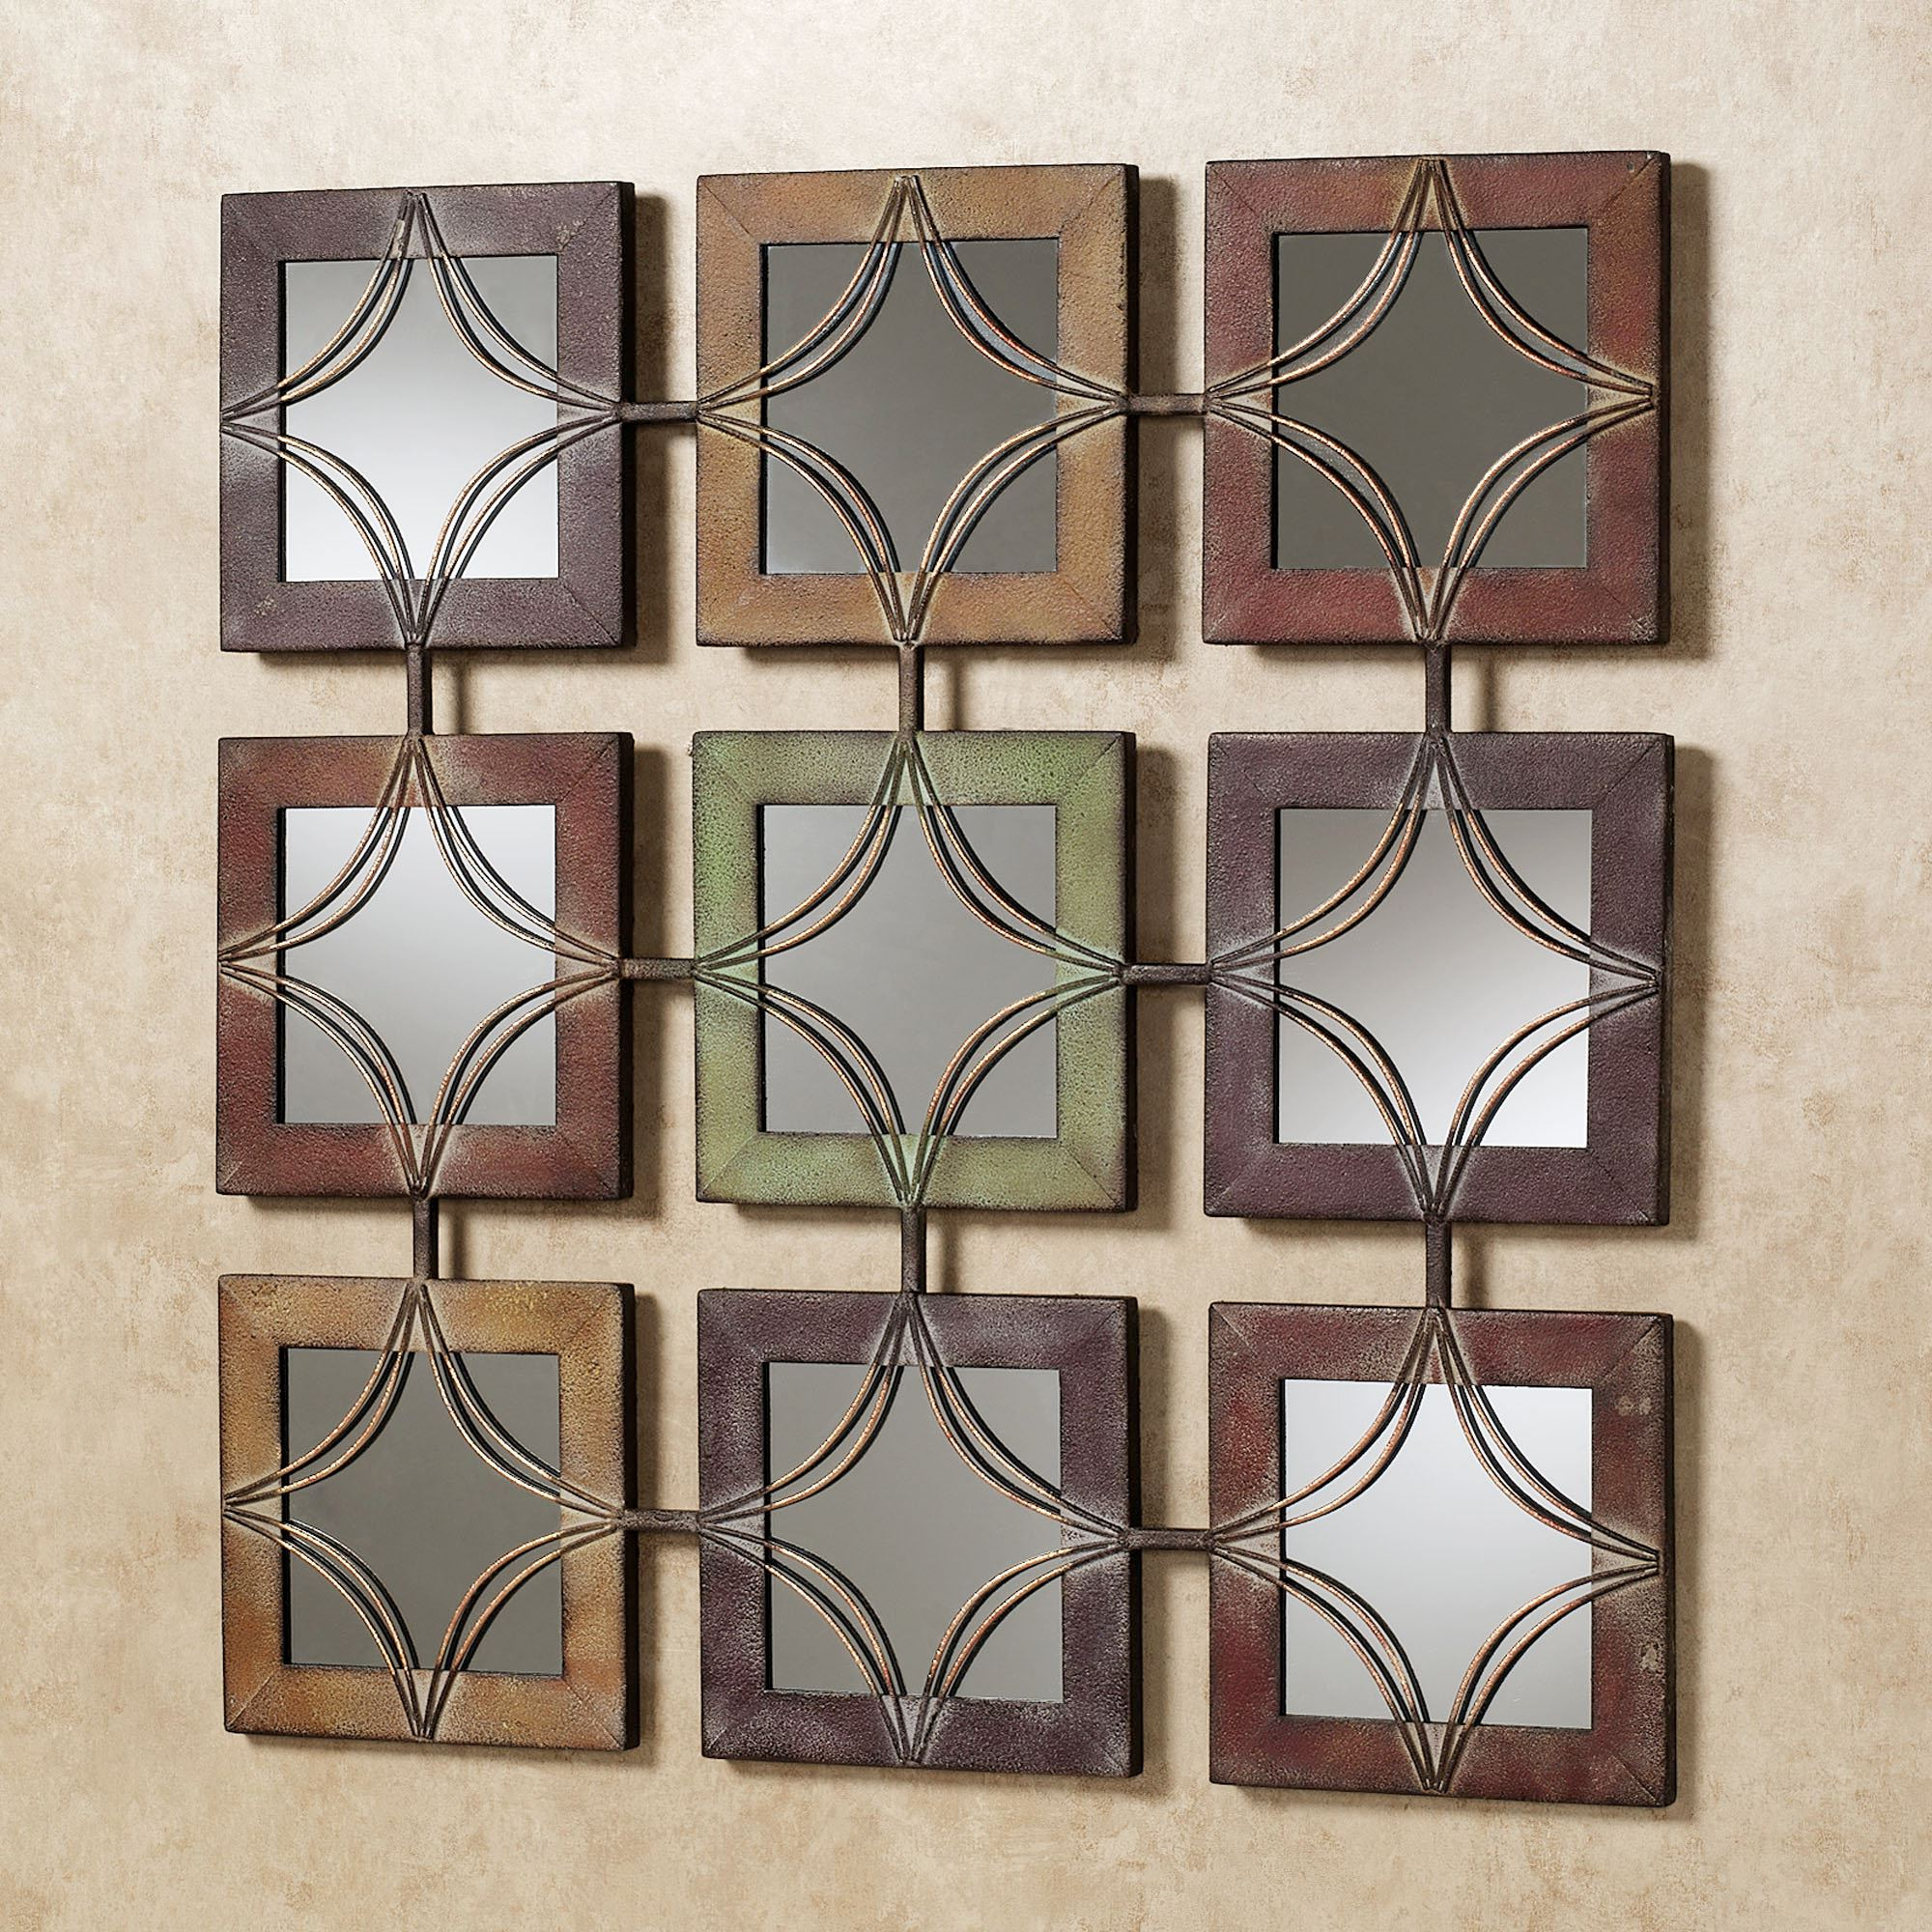 Domini Mirrored Metal Wall Art Throughout Most Up To Date Wall Mirrors With Art (View 9 of 20)